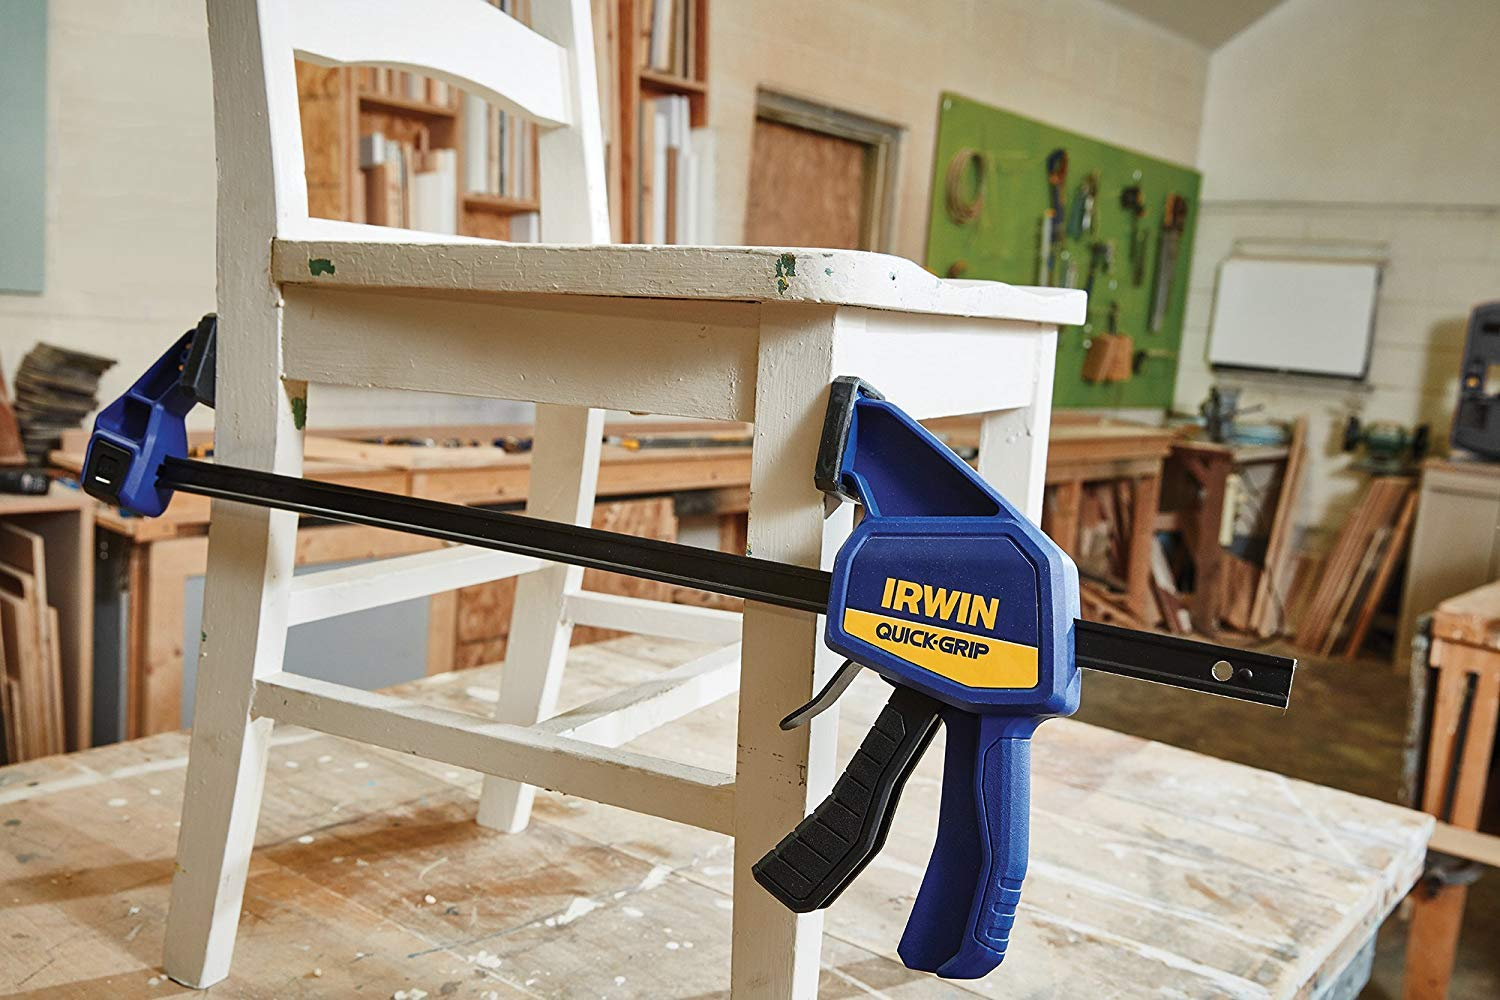 IRWIN QUICK-GRIP One-Handed Bar Clamp, Medium-Duty, 18'', 3 Pack, 1964719 by Irwin Tools (Image #6)